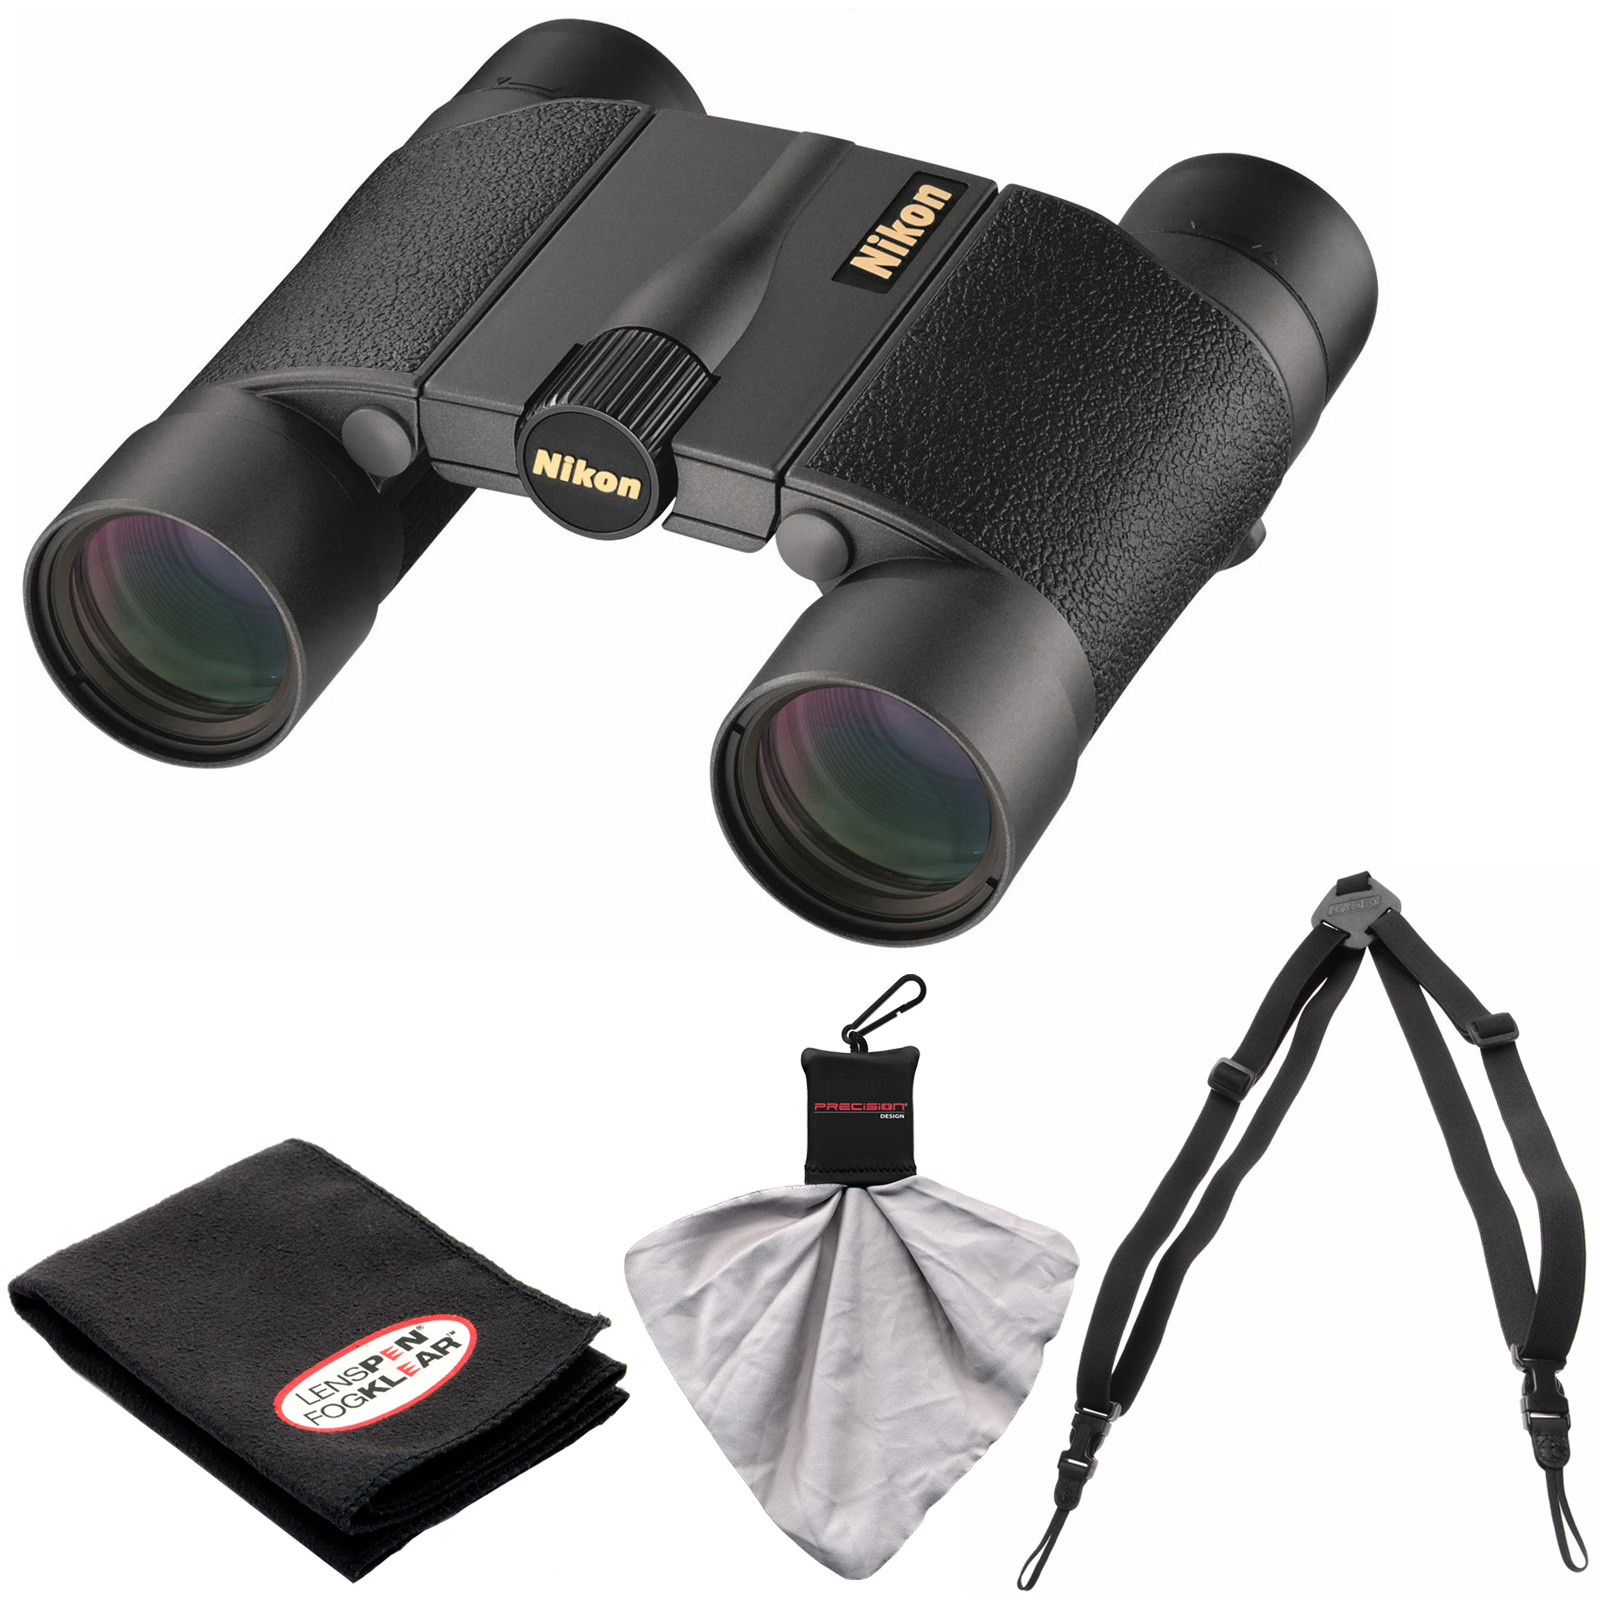 Nikon Premier LX L 10x25 Waterproof/Fogproof Binoculars with Case with Harness   Cleaning Kit